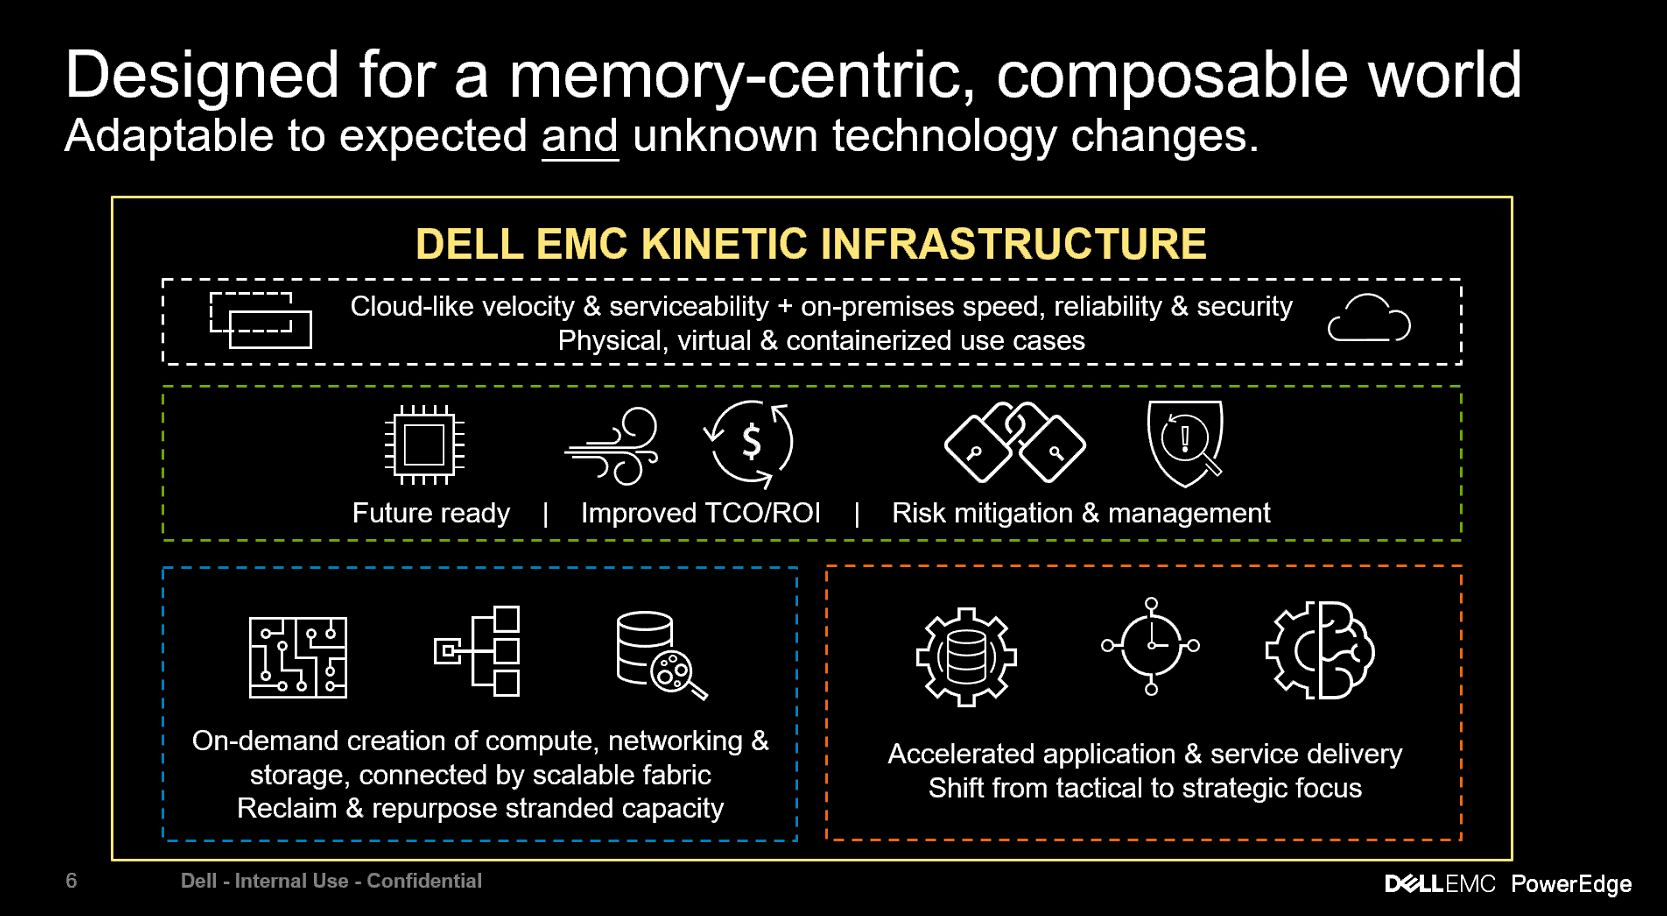 Dell EMC PowerEdge MX Kinetic Infrastructure